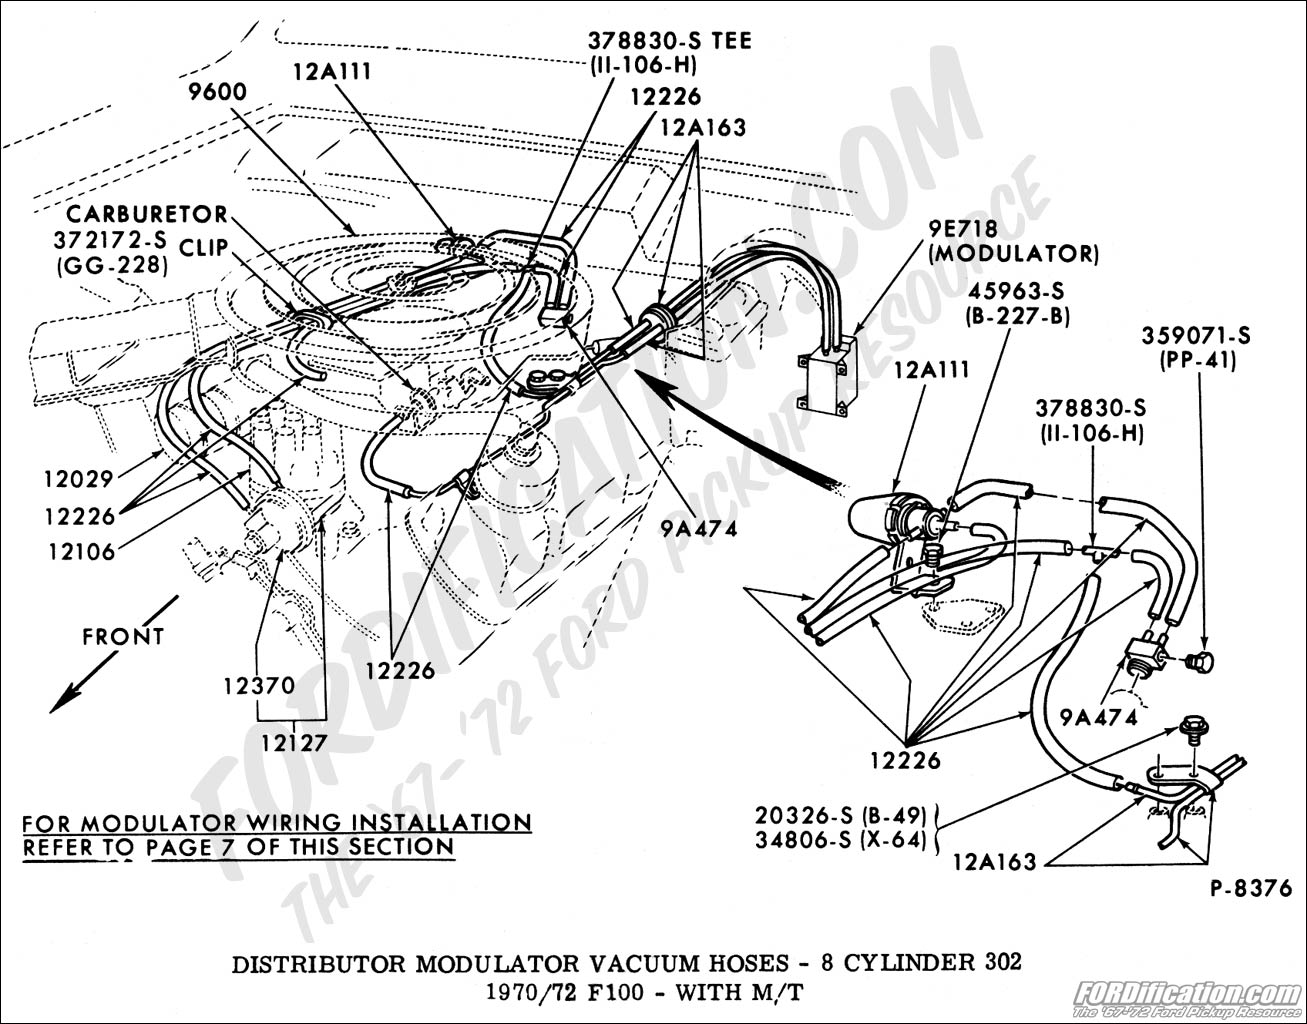 1995 chevy silverado engine diagram 1988 chevrolet car